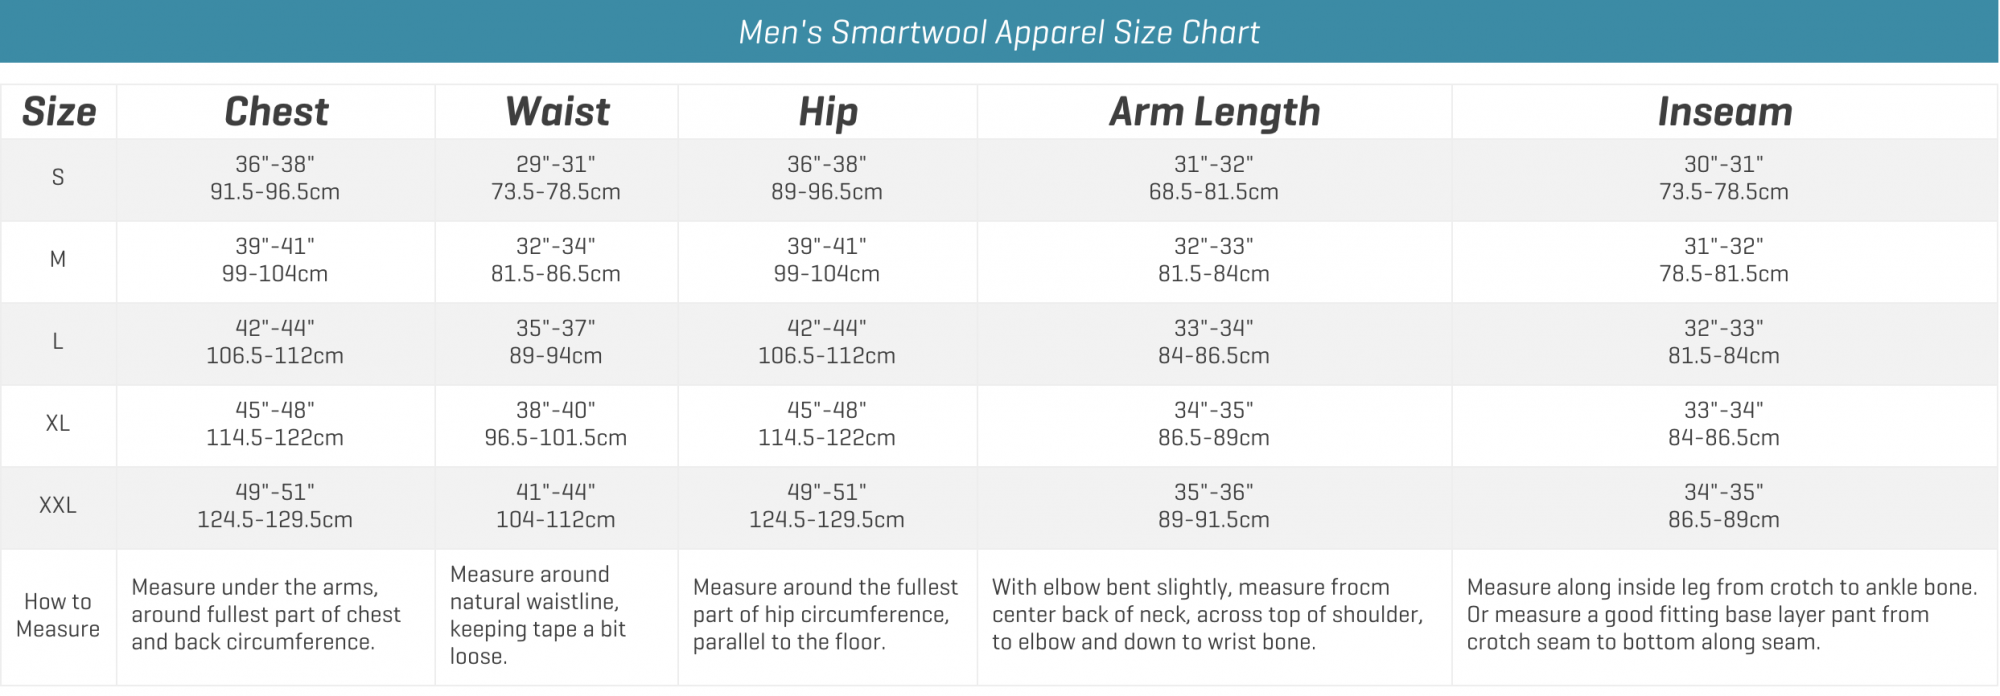 Smartwool Men Apparel